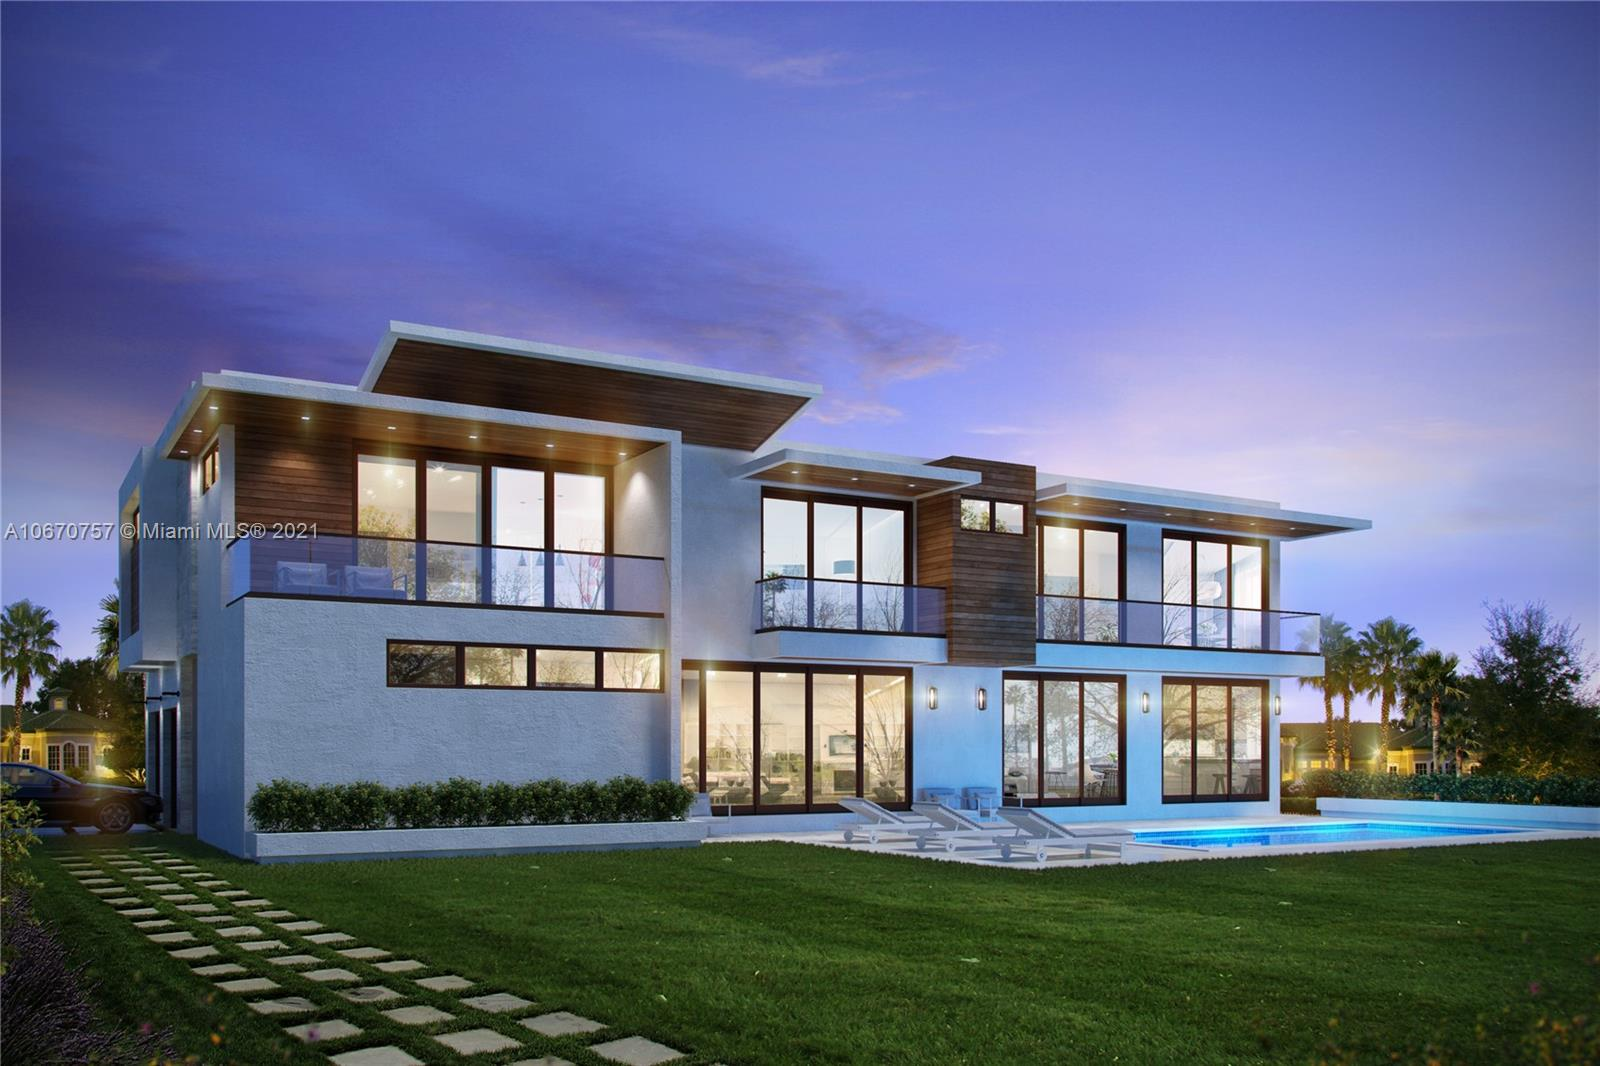 Ideally situated in the prestigious Ponce-Davis neighborhood, this contemporary new construction 2-story estate is being built brand new on a ¼ acre corner lot, surrounded by majestic oaks, on highly desirable Davis Rd/SW 80th St, 1-block W of Ponce. Architectural plans completely approved for 5,564 SF of LA under AC with 5BD/4BA upstairs, and 1BD/1.5BA downstairs, with 2-car garage & generous living areas. Magnificent features include impact glass throughout, 4 AC systems, 10' ceilings, modern glass railings on exterior balconies & interior stairways, outside bbq, heated/saline pool & spa. Beautiful master suite with large 23' balcony and 2 huge walk-in closets. Buyer may select certain finishes. Spring 2021 completion date. Make your dream come true in Ponce-Davis!